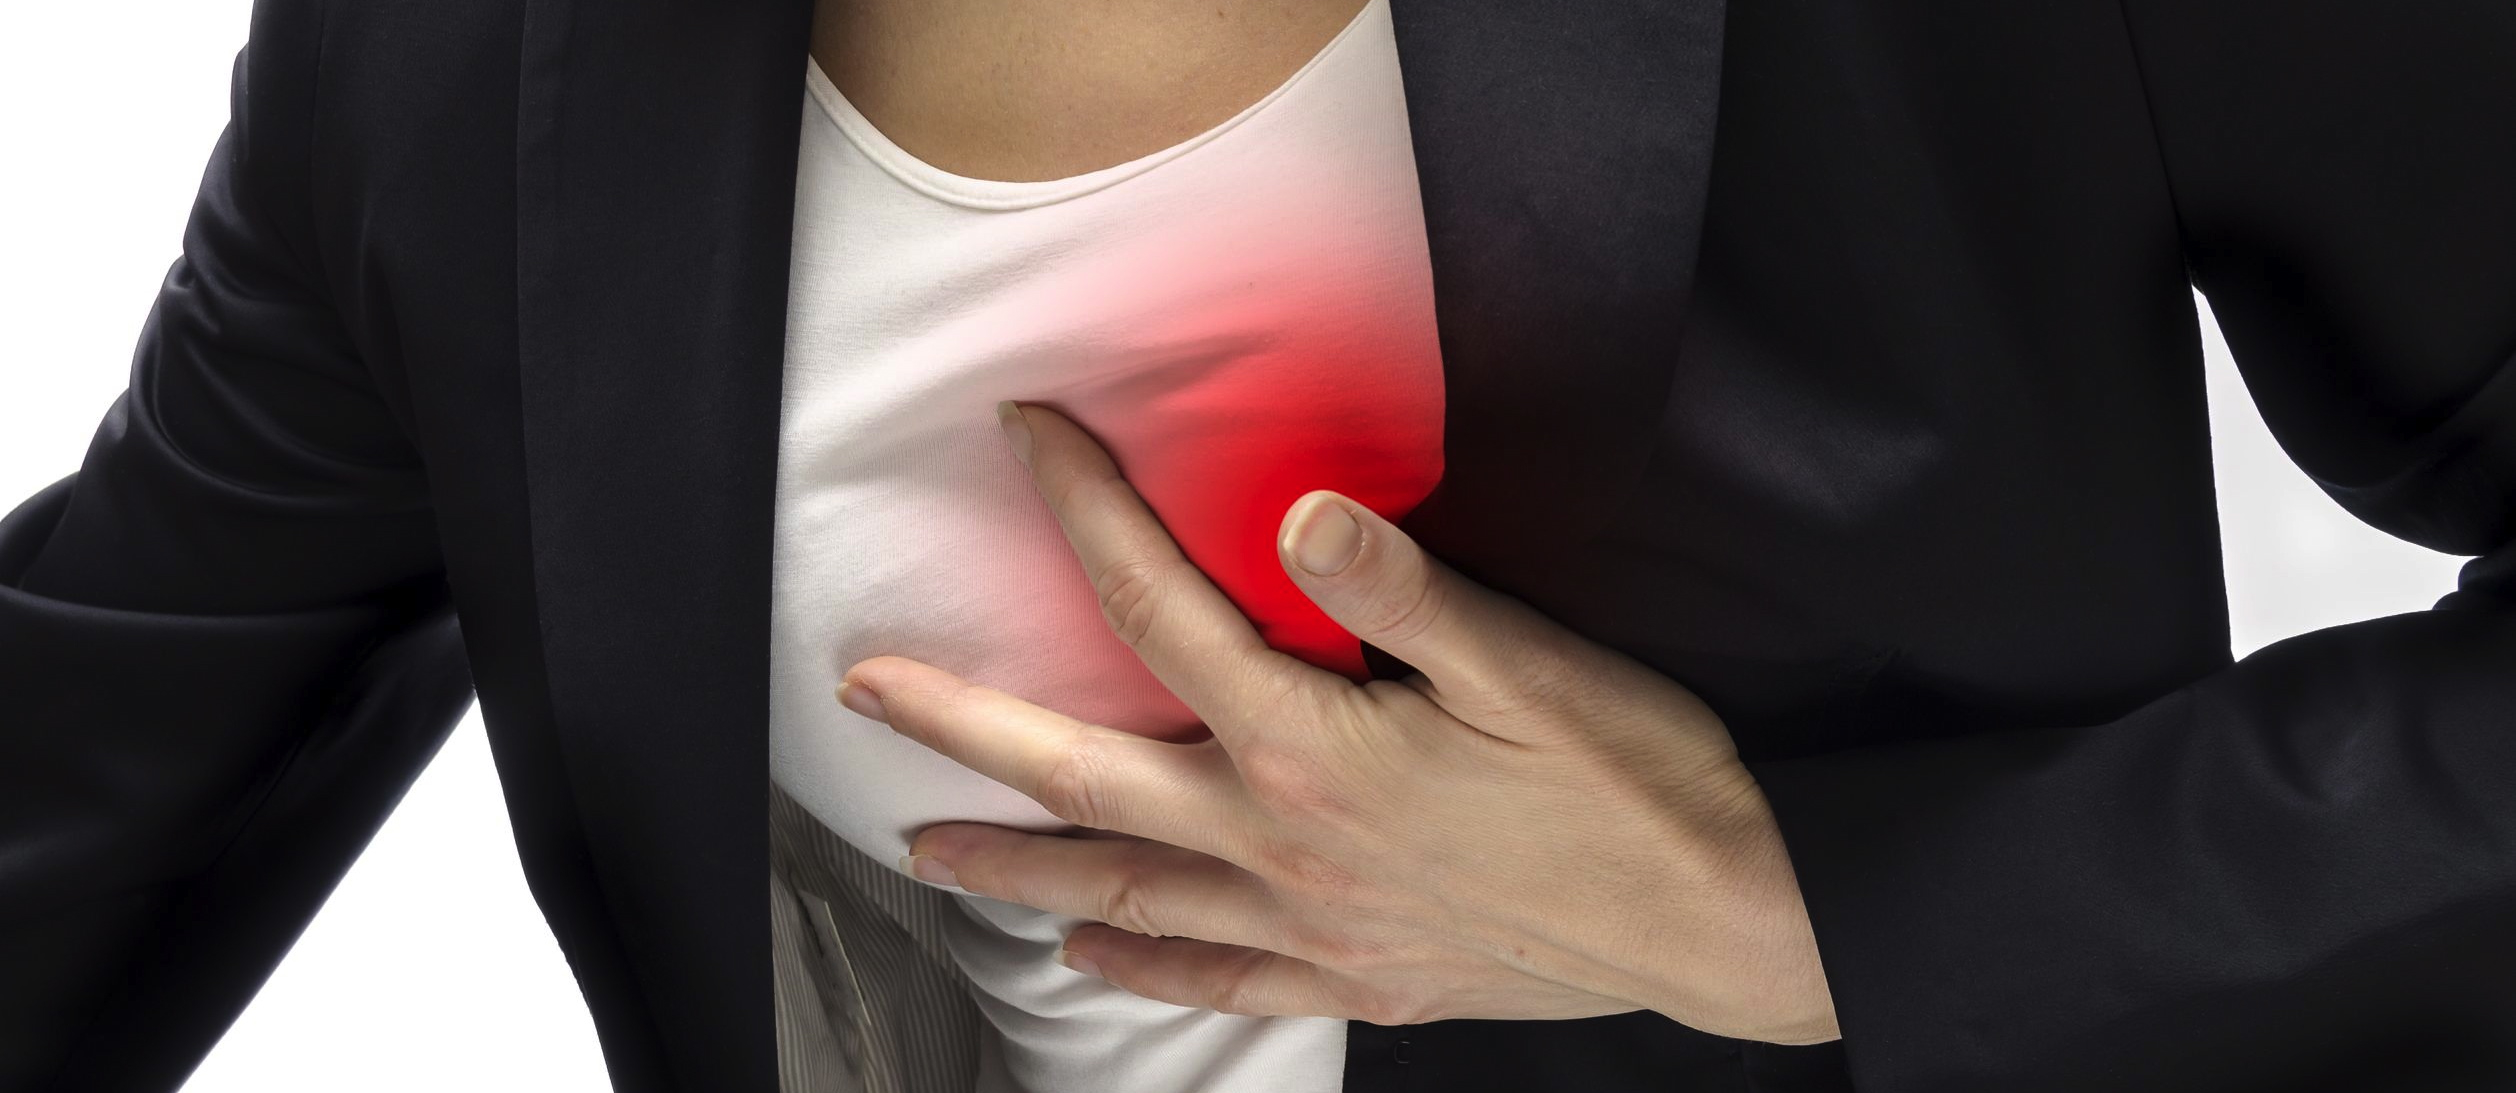 How Diet Can Help Relieve Breast Pain